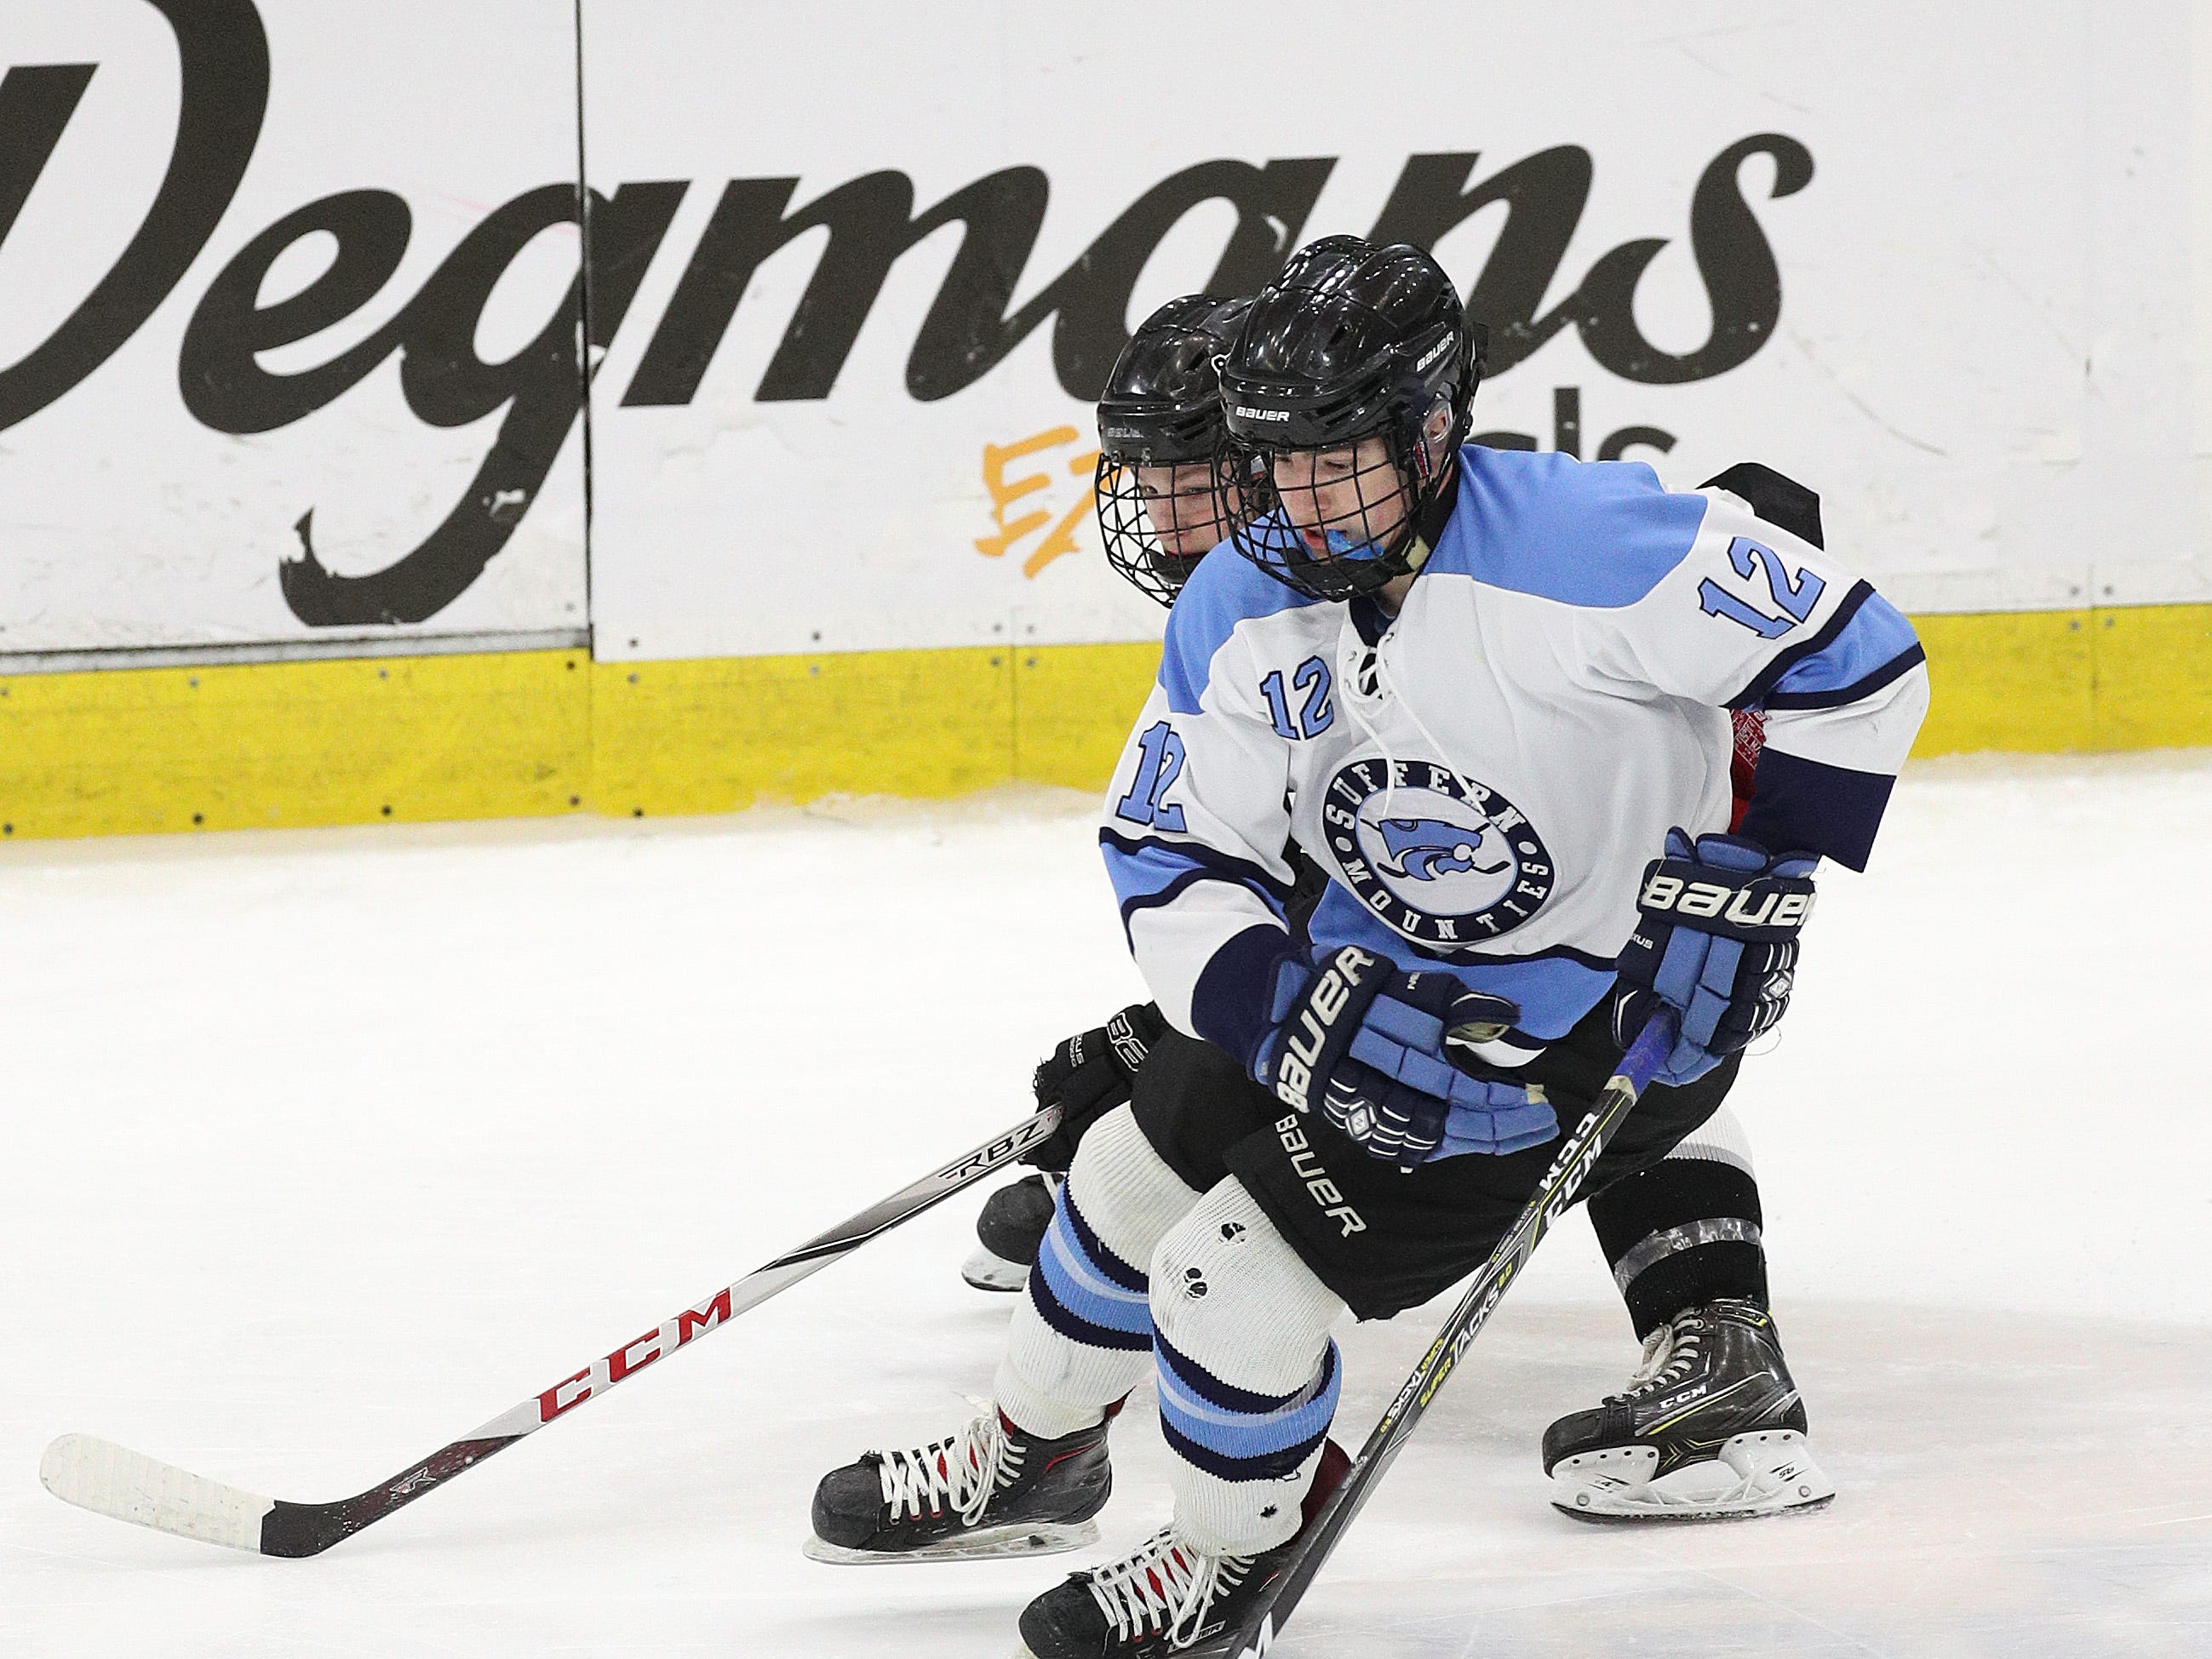 Suffern's Chris Olsen carries the puck up the ice.